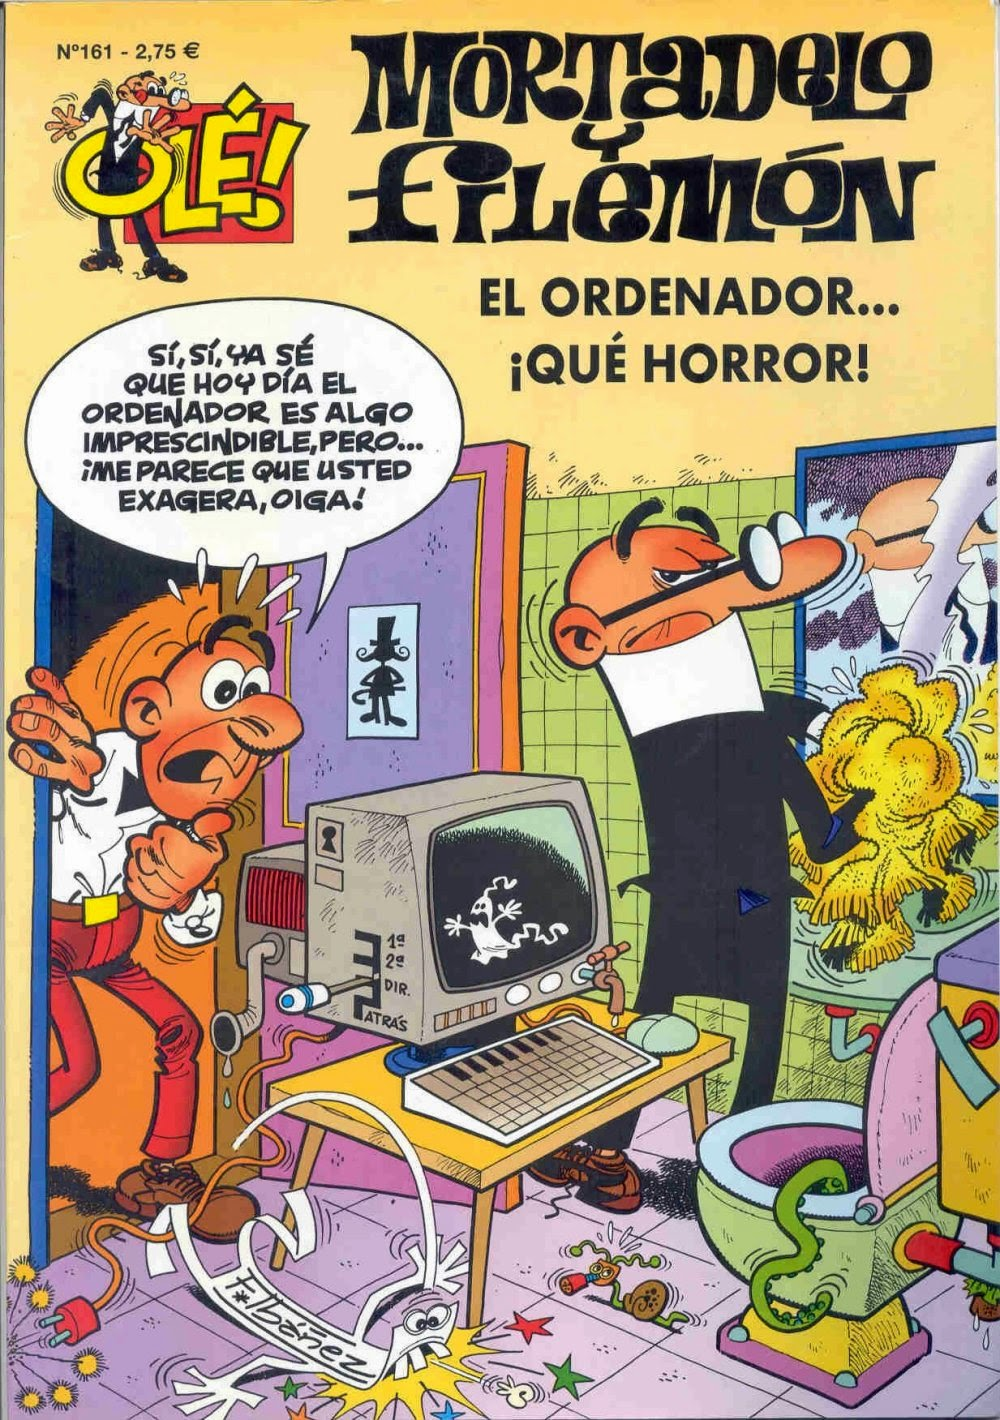 Mortadelo y Filemón. El ordenador...¡Qué horror! (Francisco Ibañez)